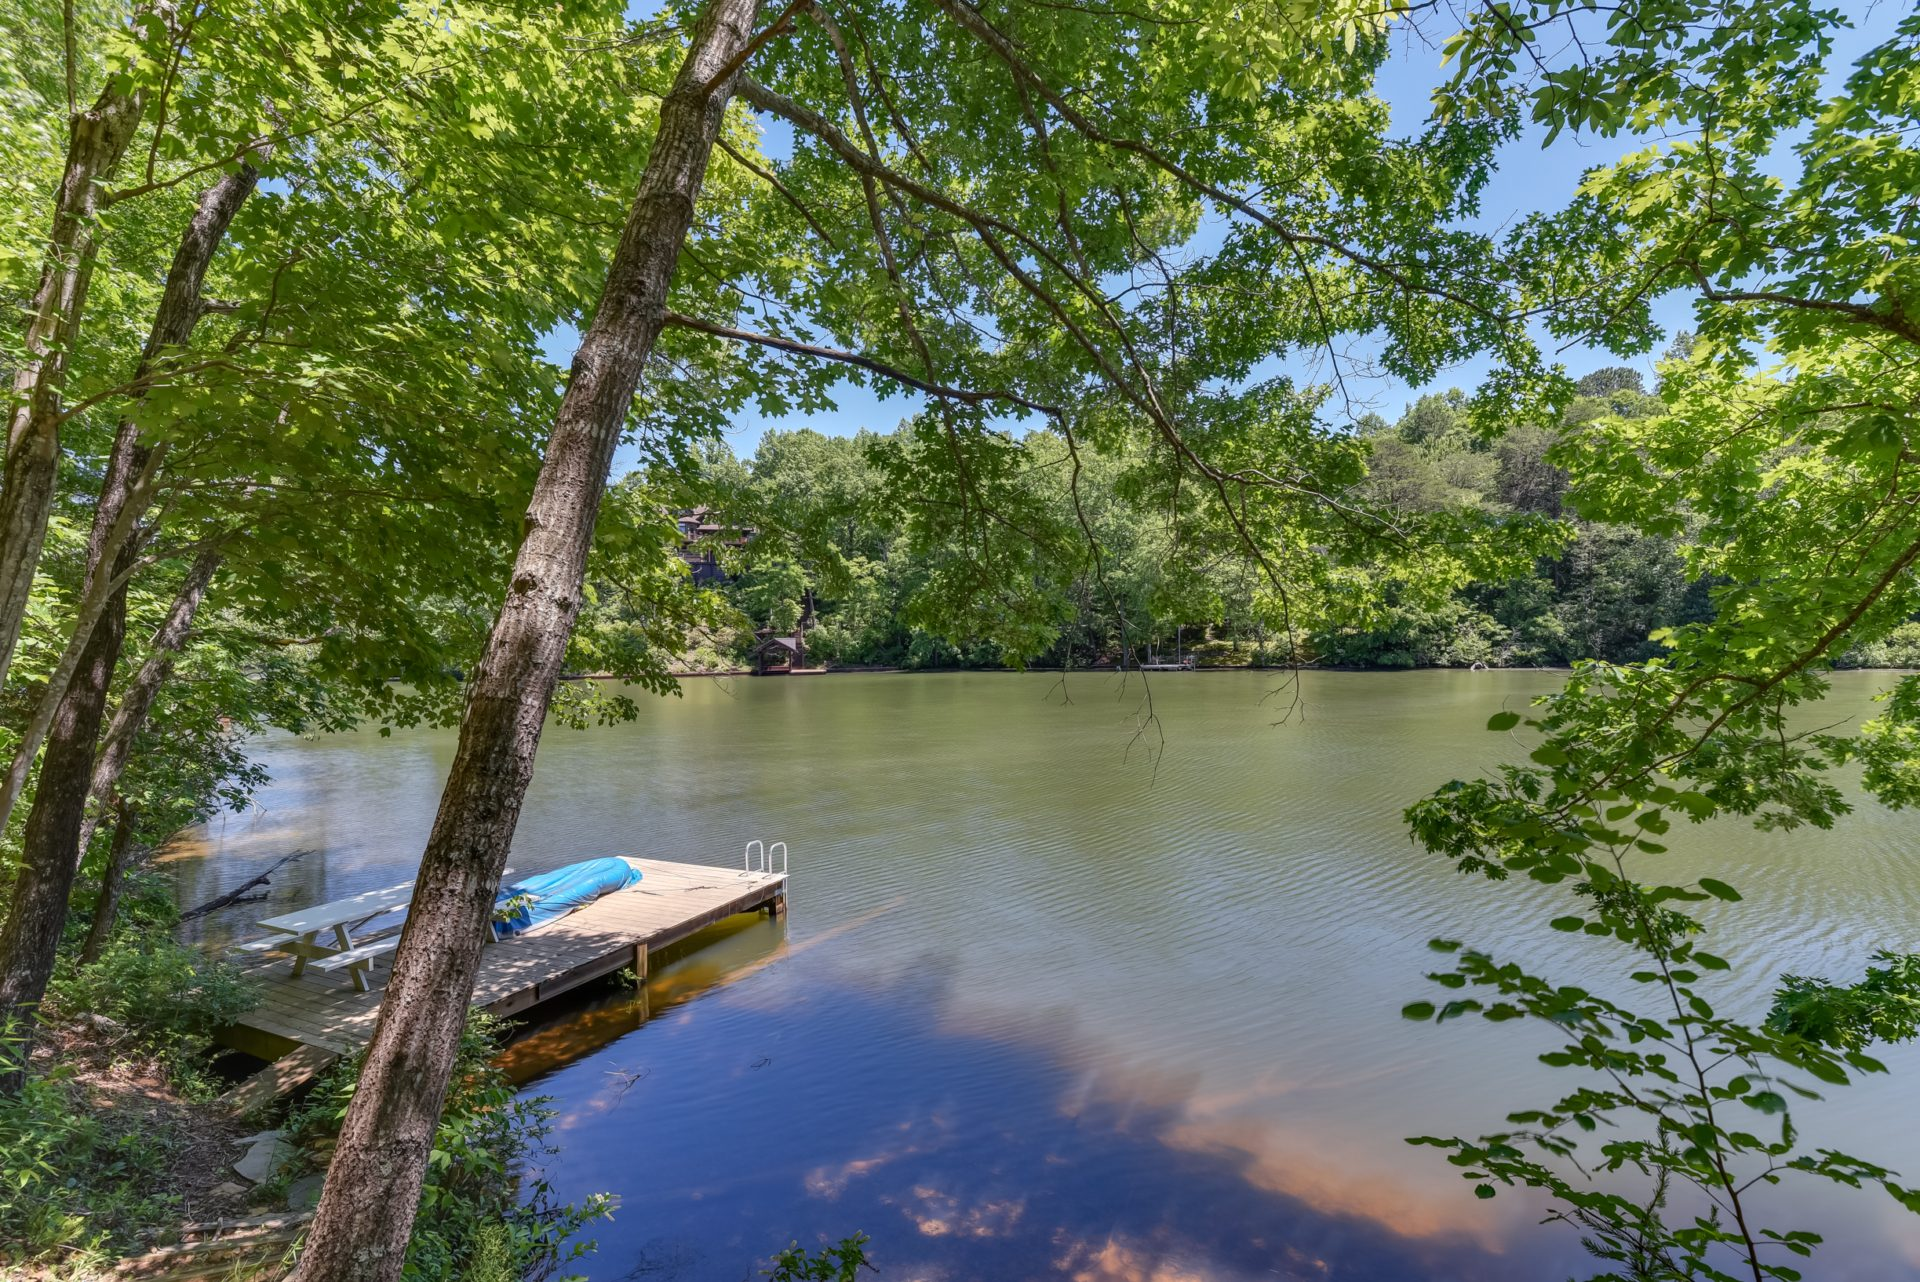 Under Contract: Lake Lanier, updated log home on the water: 512 Caledonia Loop, Landrum SC